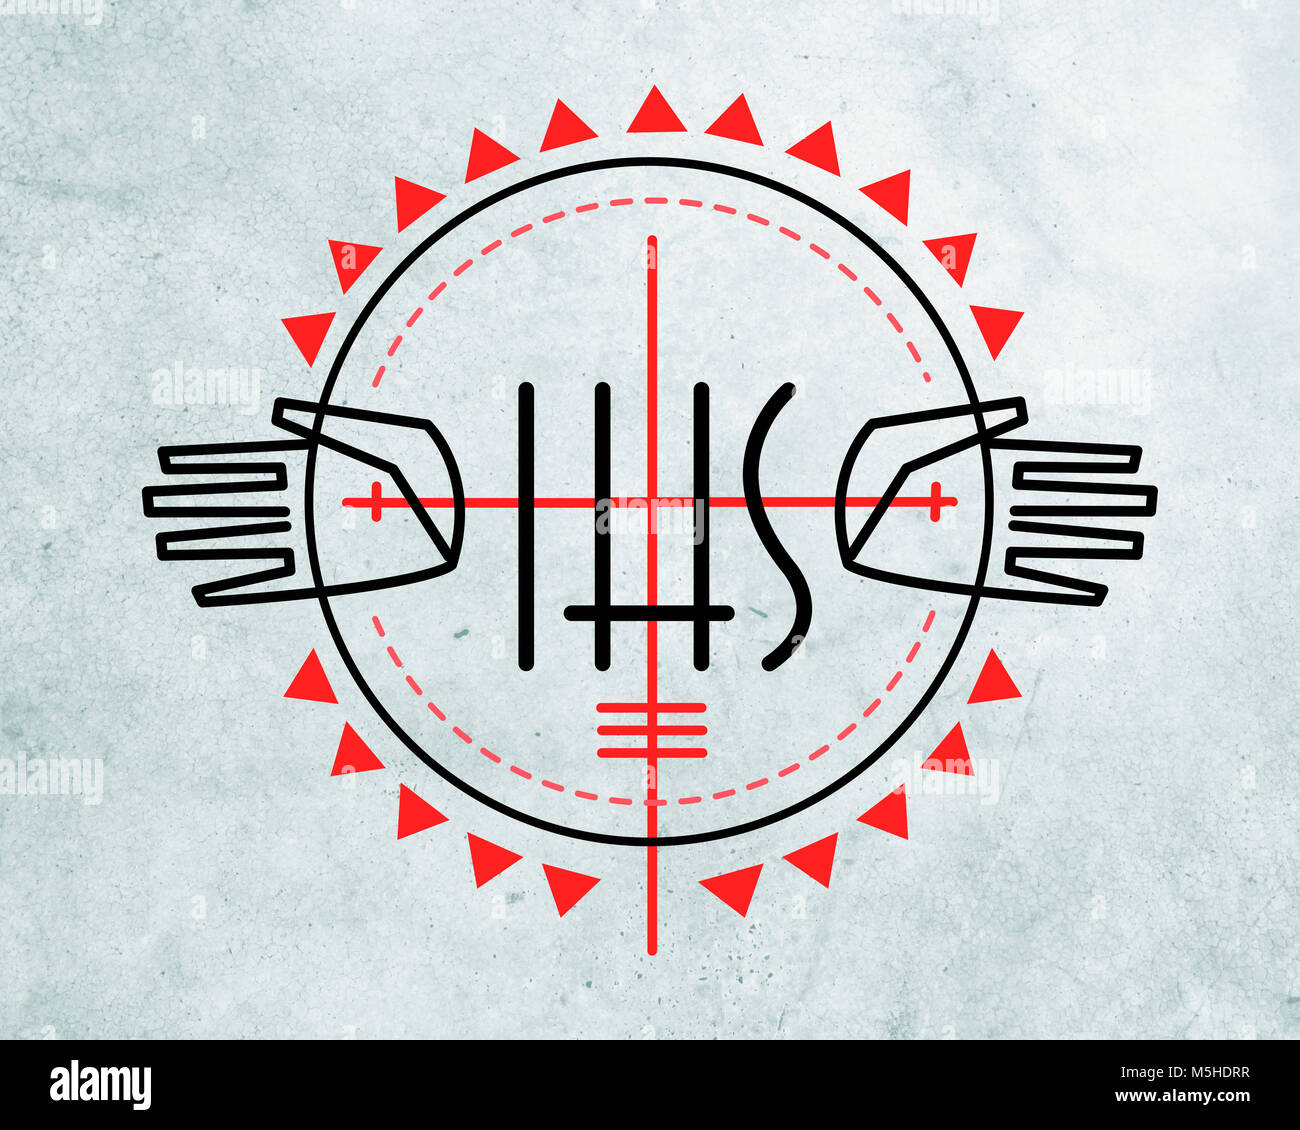 Monogram of jesus christ stock photos monogram of jesus christ hand drawn vector illustration or drawing of some religious christian symbols and jesus hands stock biocorpaavc Choice Image